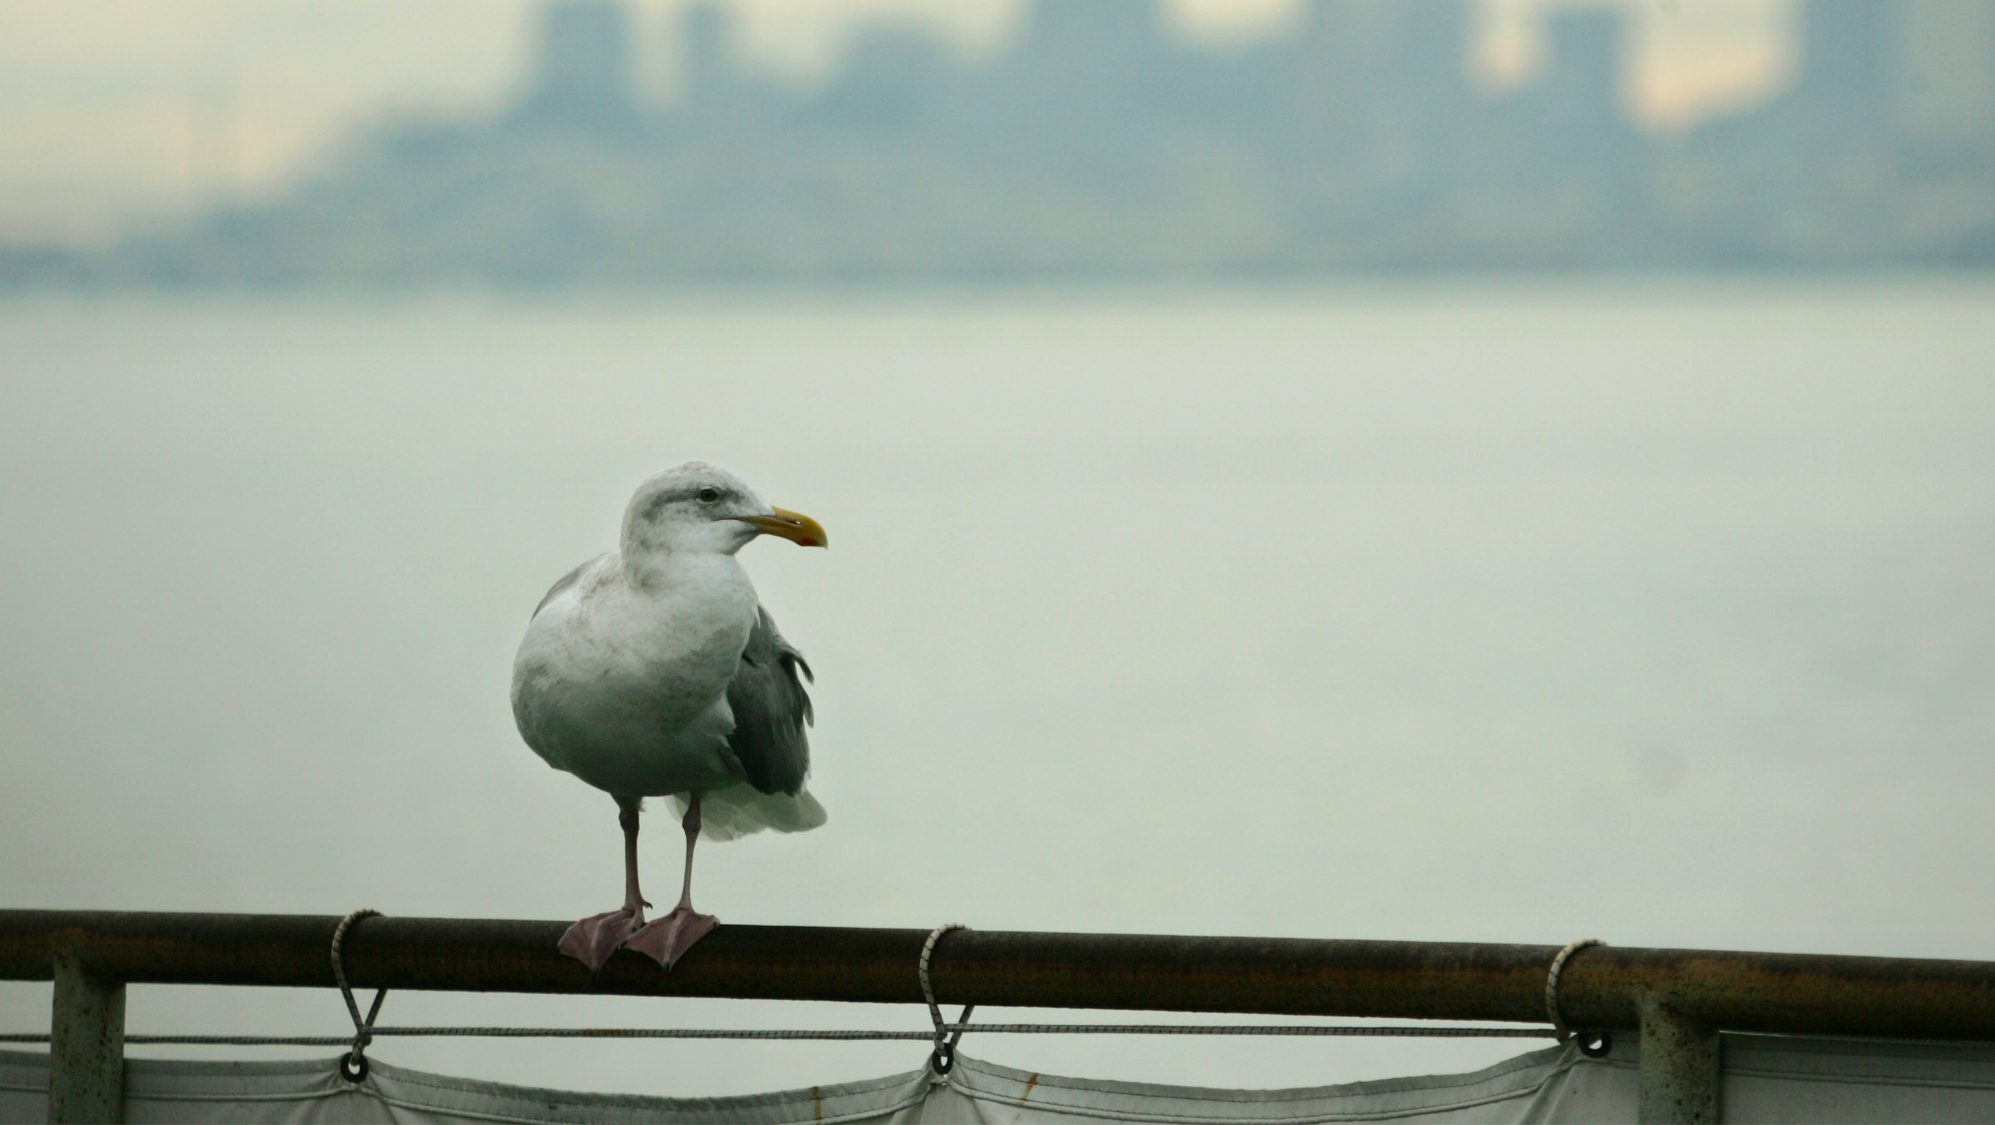 A seagull rests on a rail in Sausalito, Calif., Monday, Jan. 3, 2005, with the San Francisco skyline in the background. In Northern California, skies were clearing after a week of winter storms that caused long traffic delays and slippery roads over the holiday weekend. The National Weather Service predicted another storm later this week, with more snow possible in higher elevations.